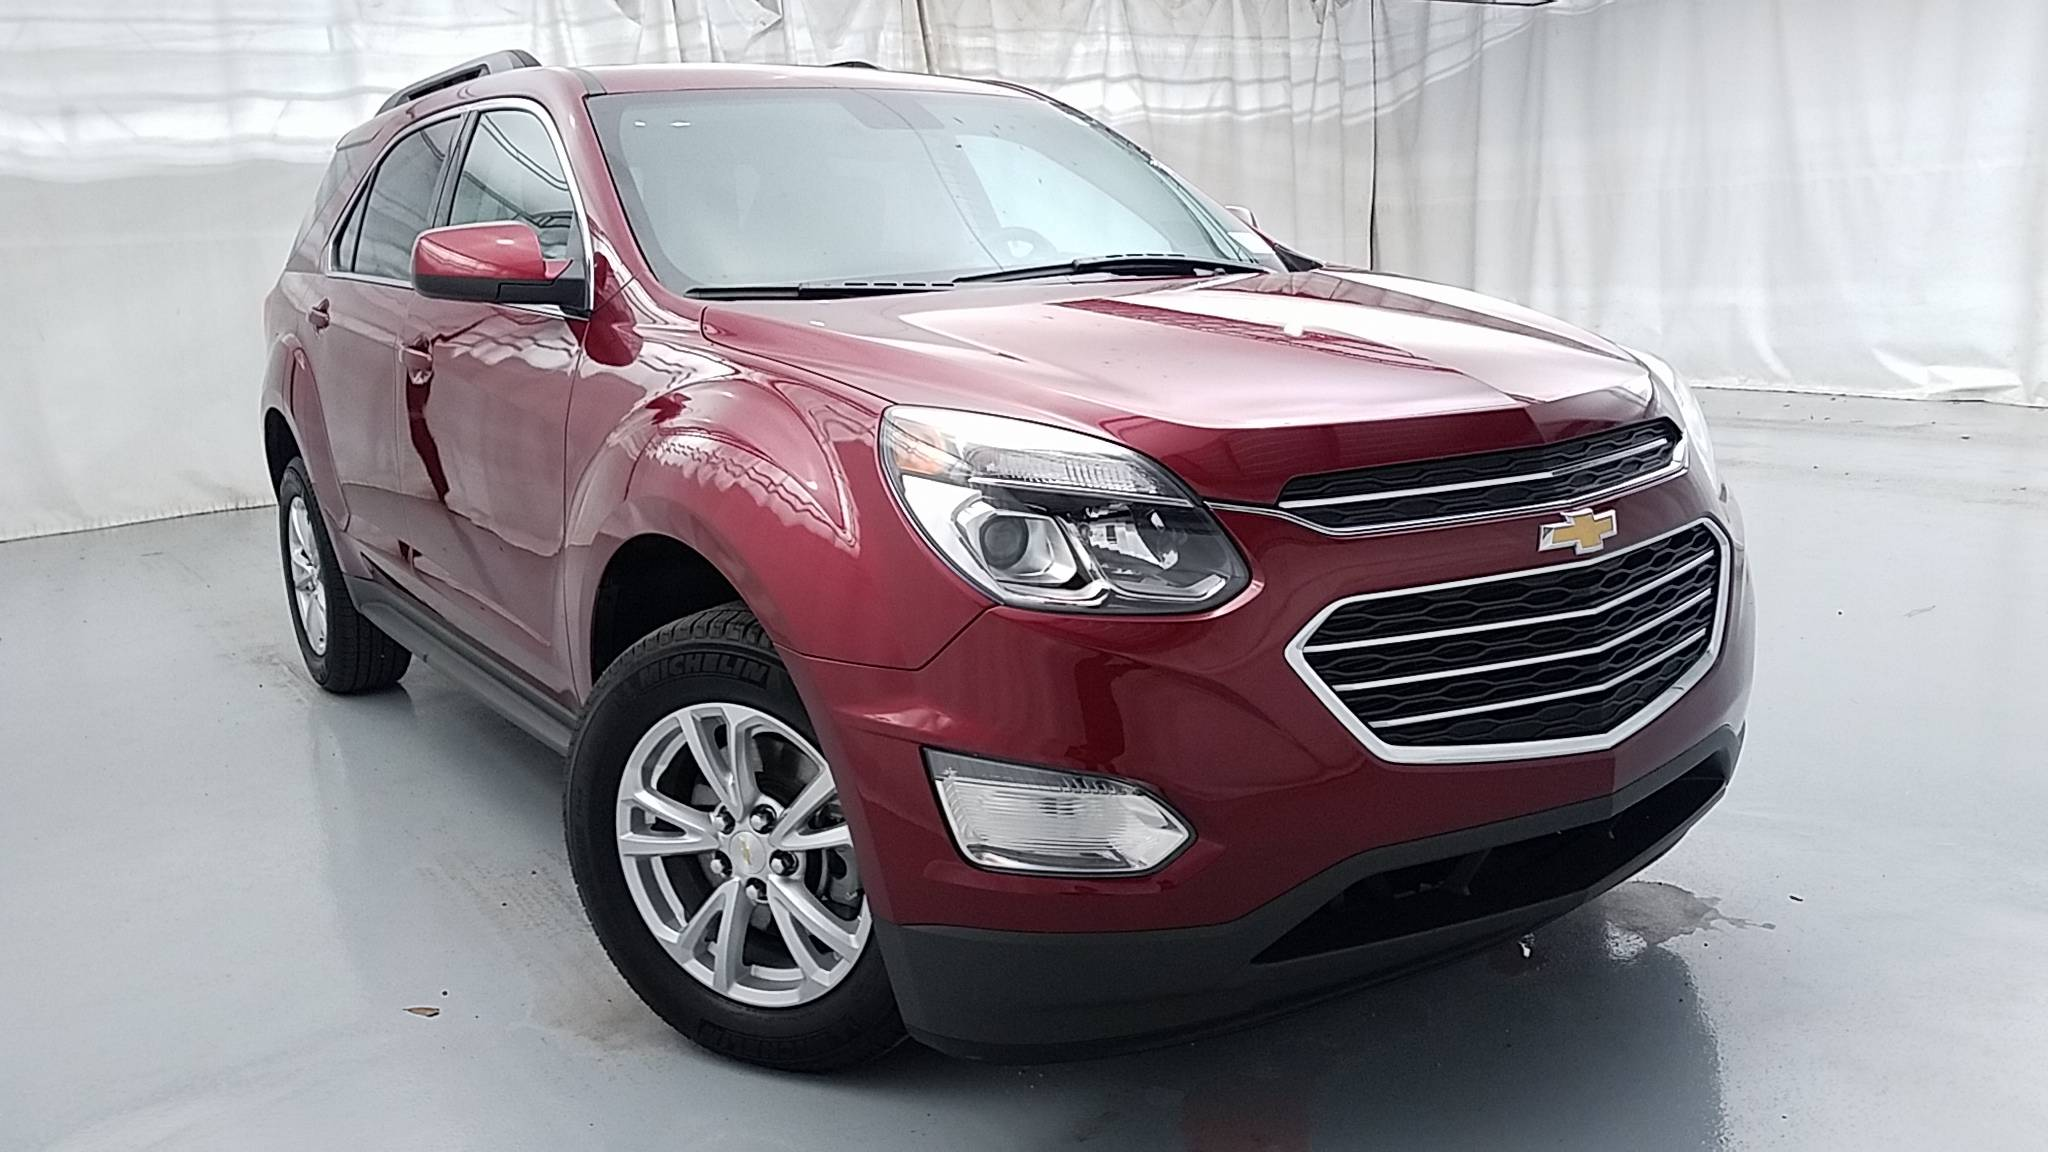 2017 Malibu Vehicles for Sale in Hammond LA